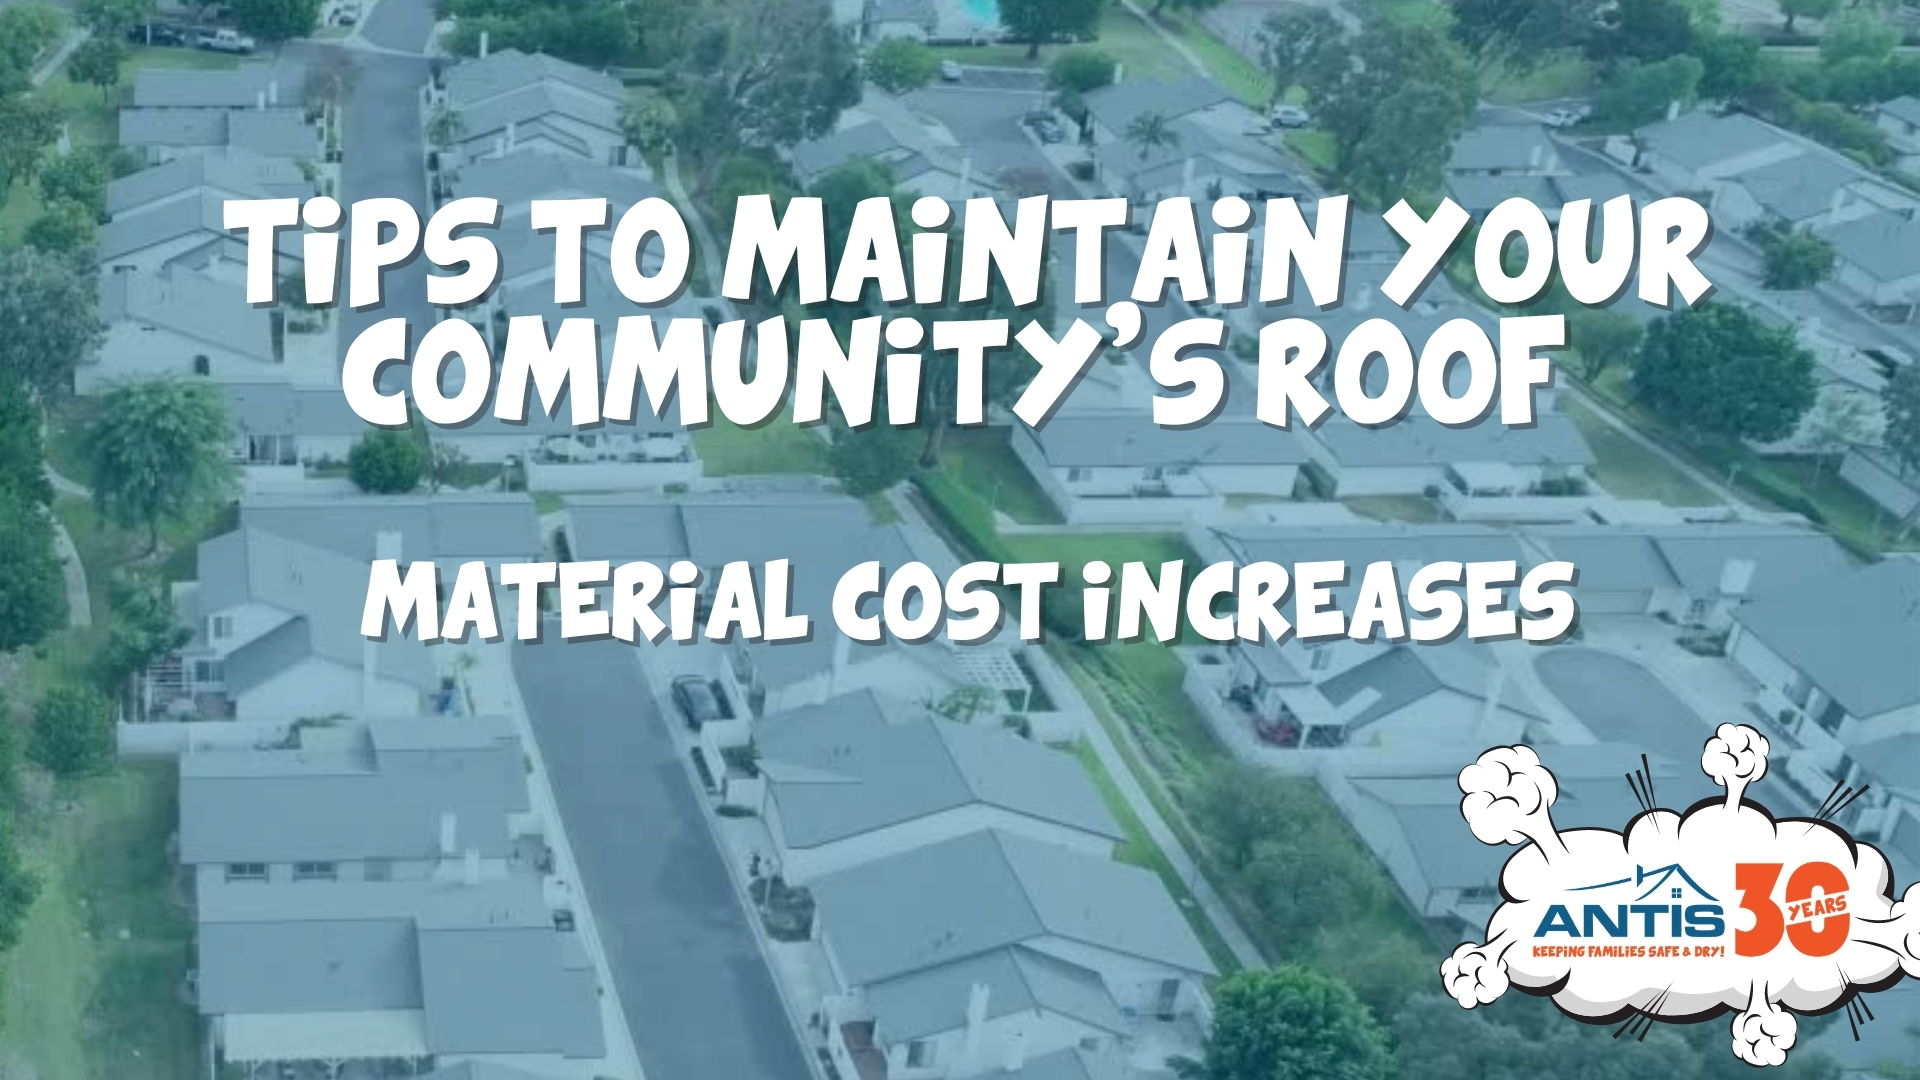 Roofing Material Costs Increases